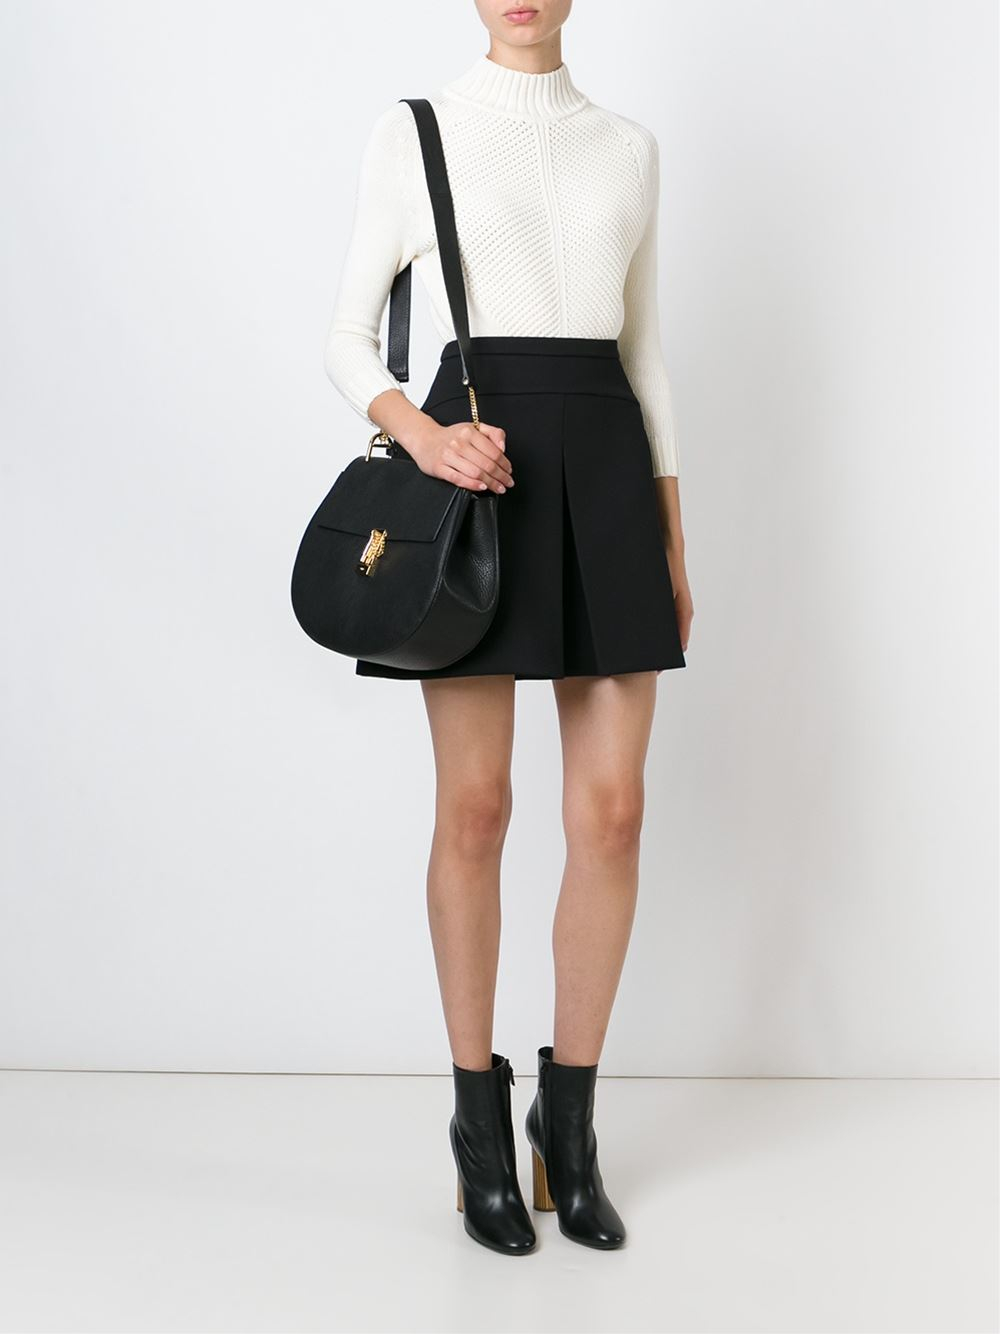 Chloé Large 'Drew' Shoulder Bag in Black | Lyst